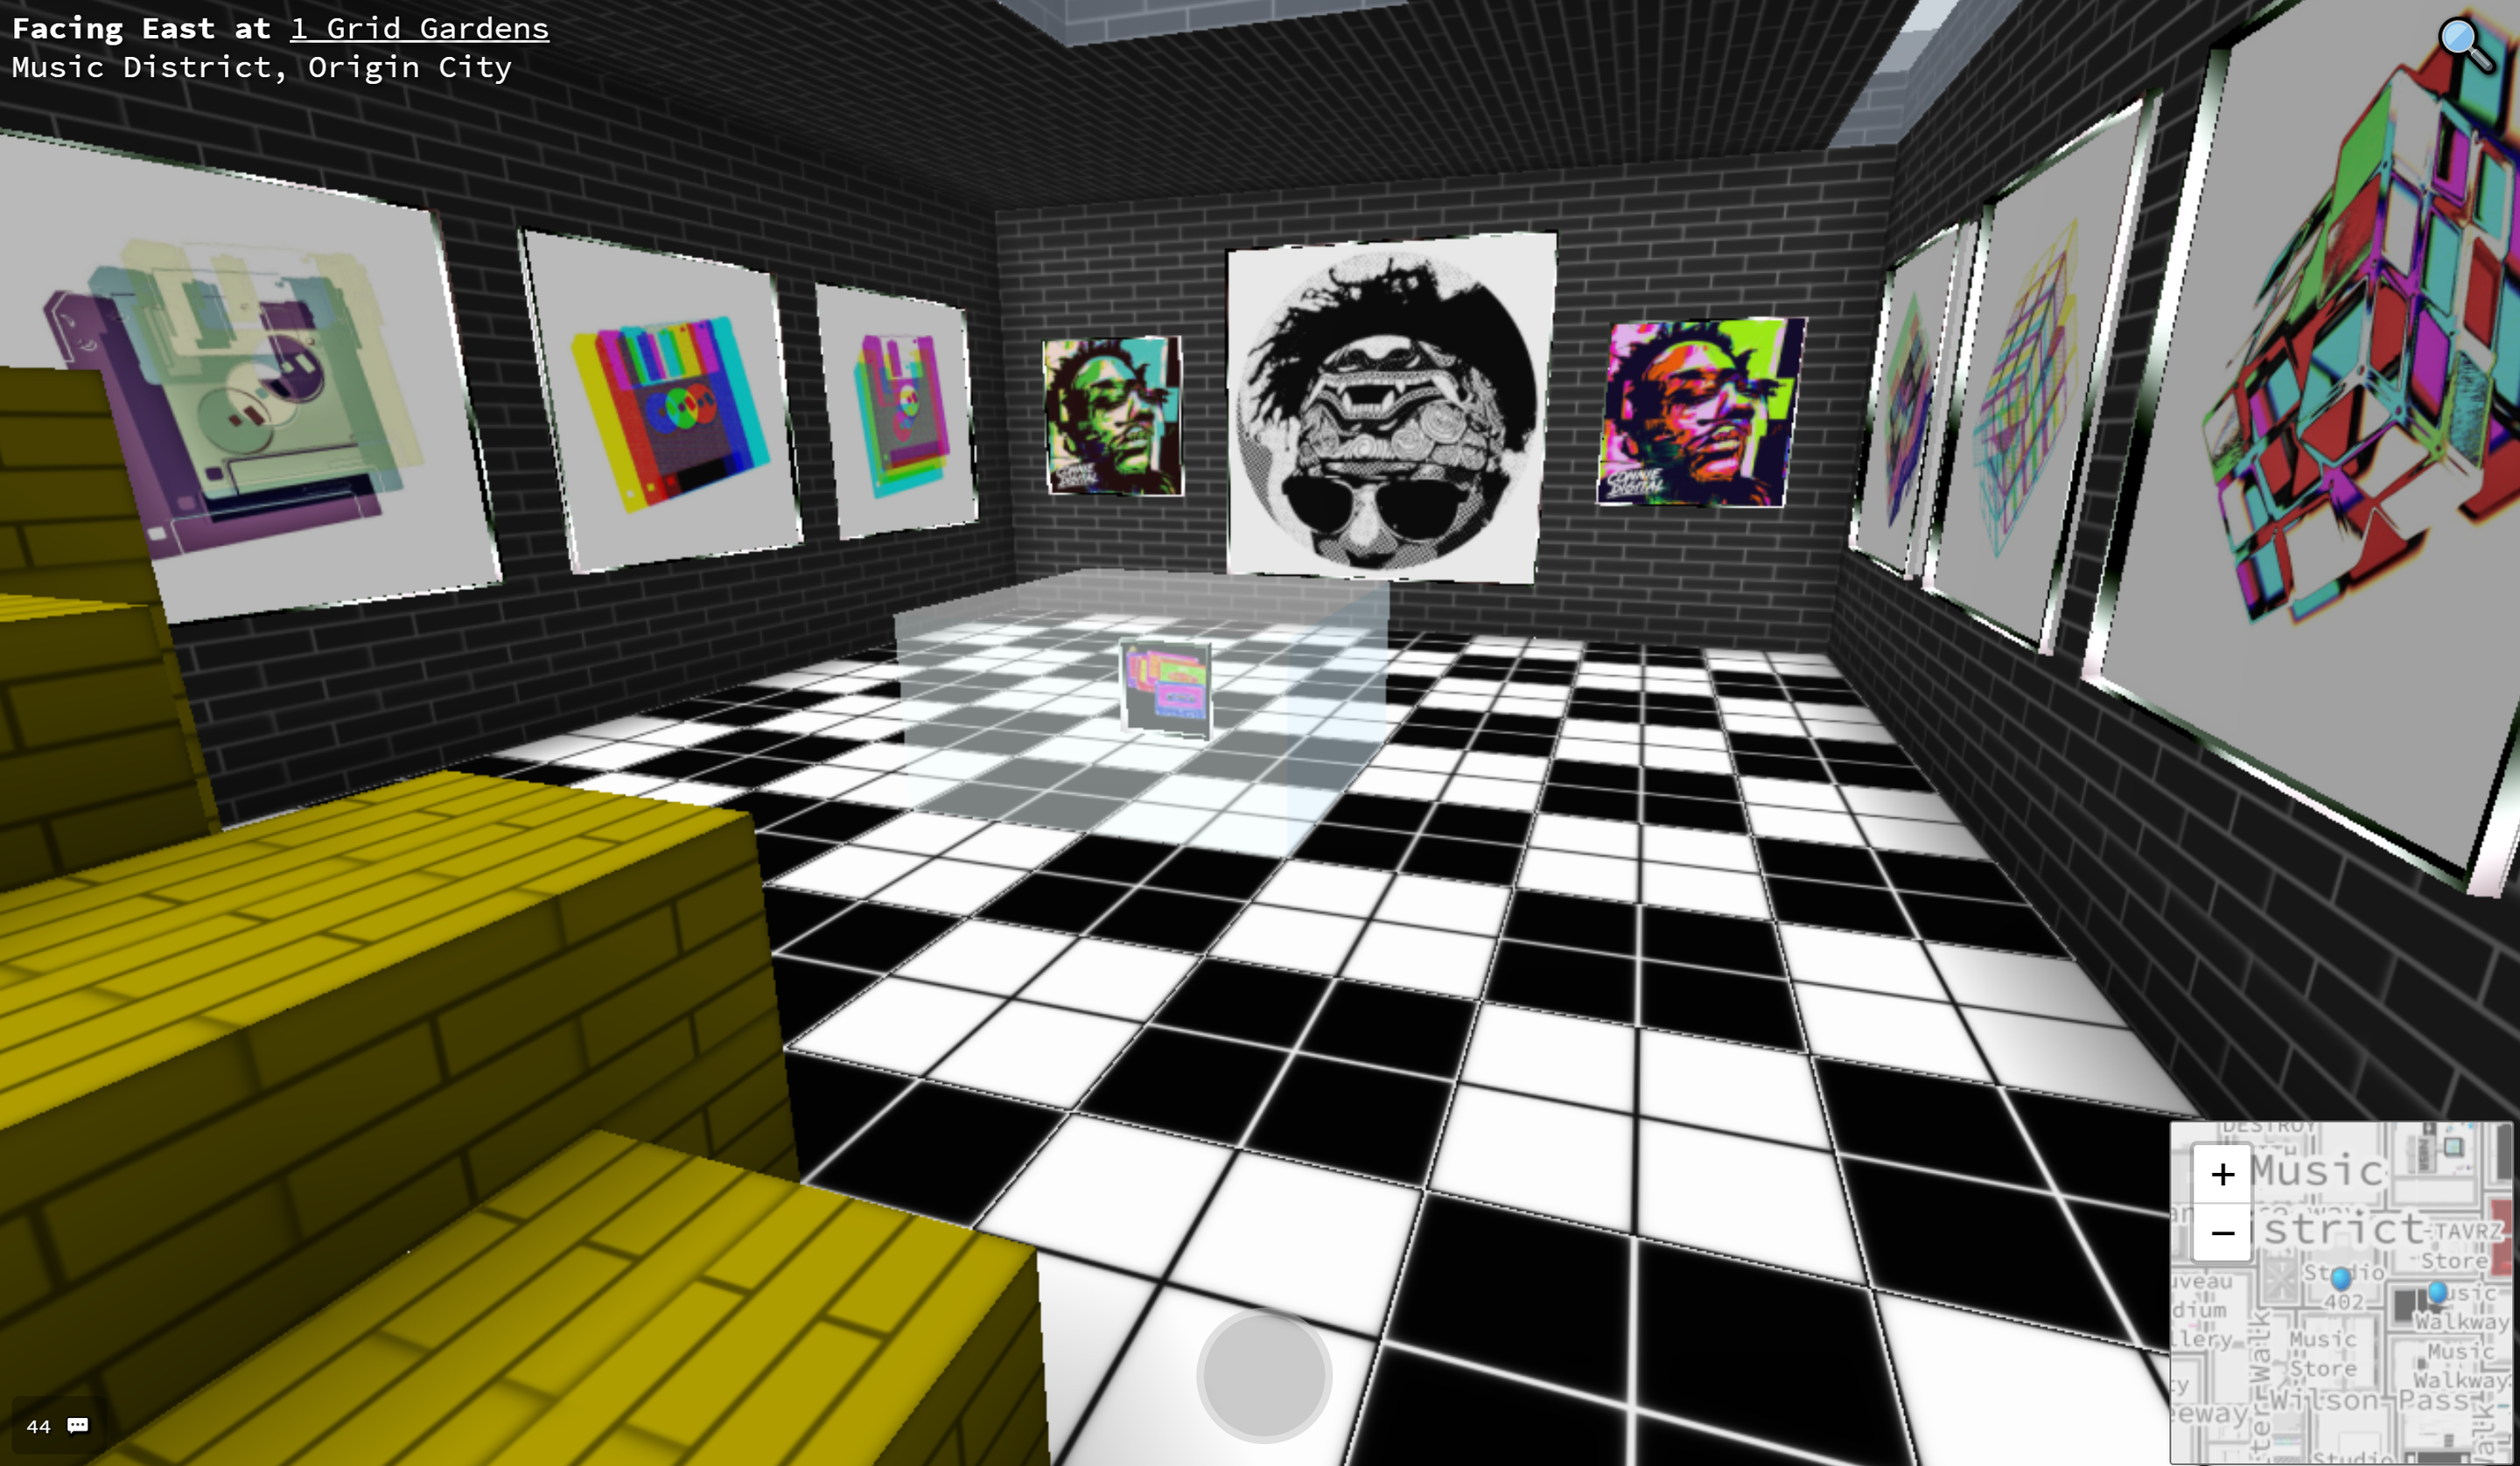 Connie Digital Cryptovoxels VR Art Gallery on Ethereum